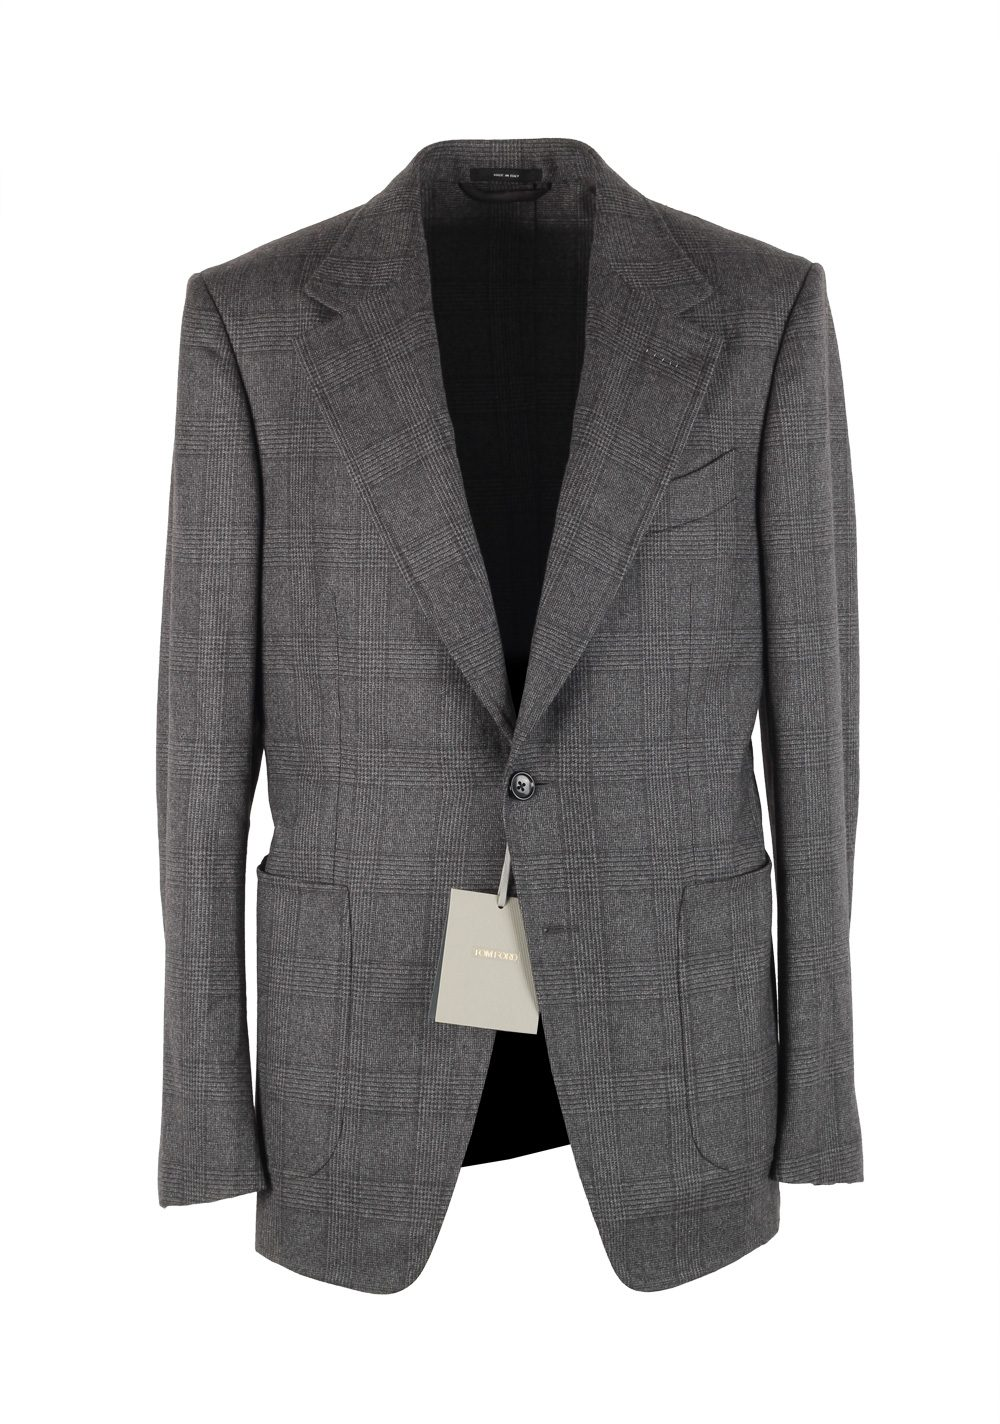 TOM FORD Shelton Checked Gray Sport Coat Size 48 / 38R U.S. In Wool | Costume Limité